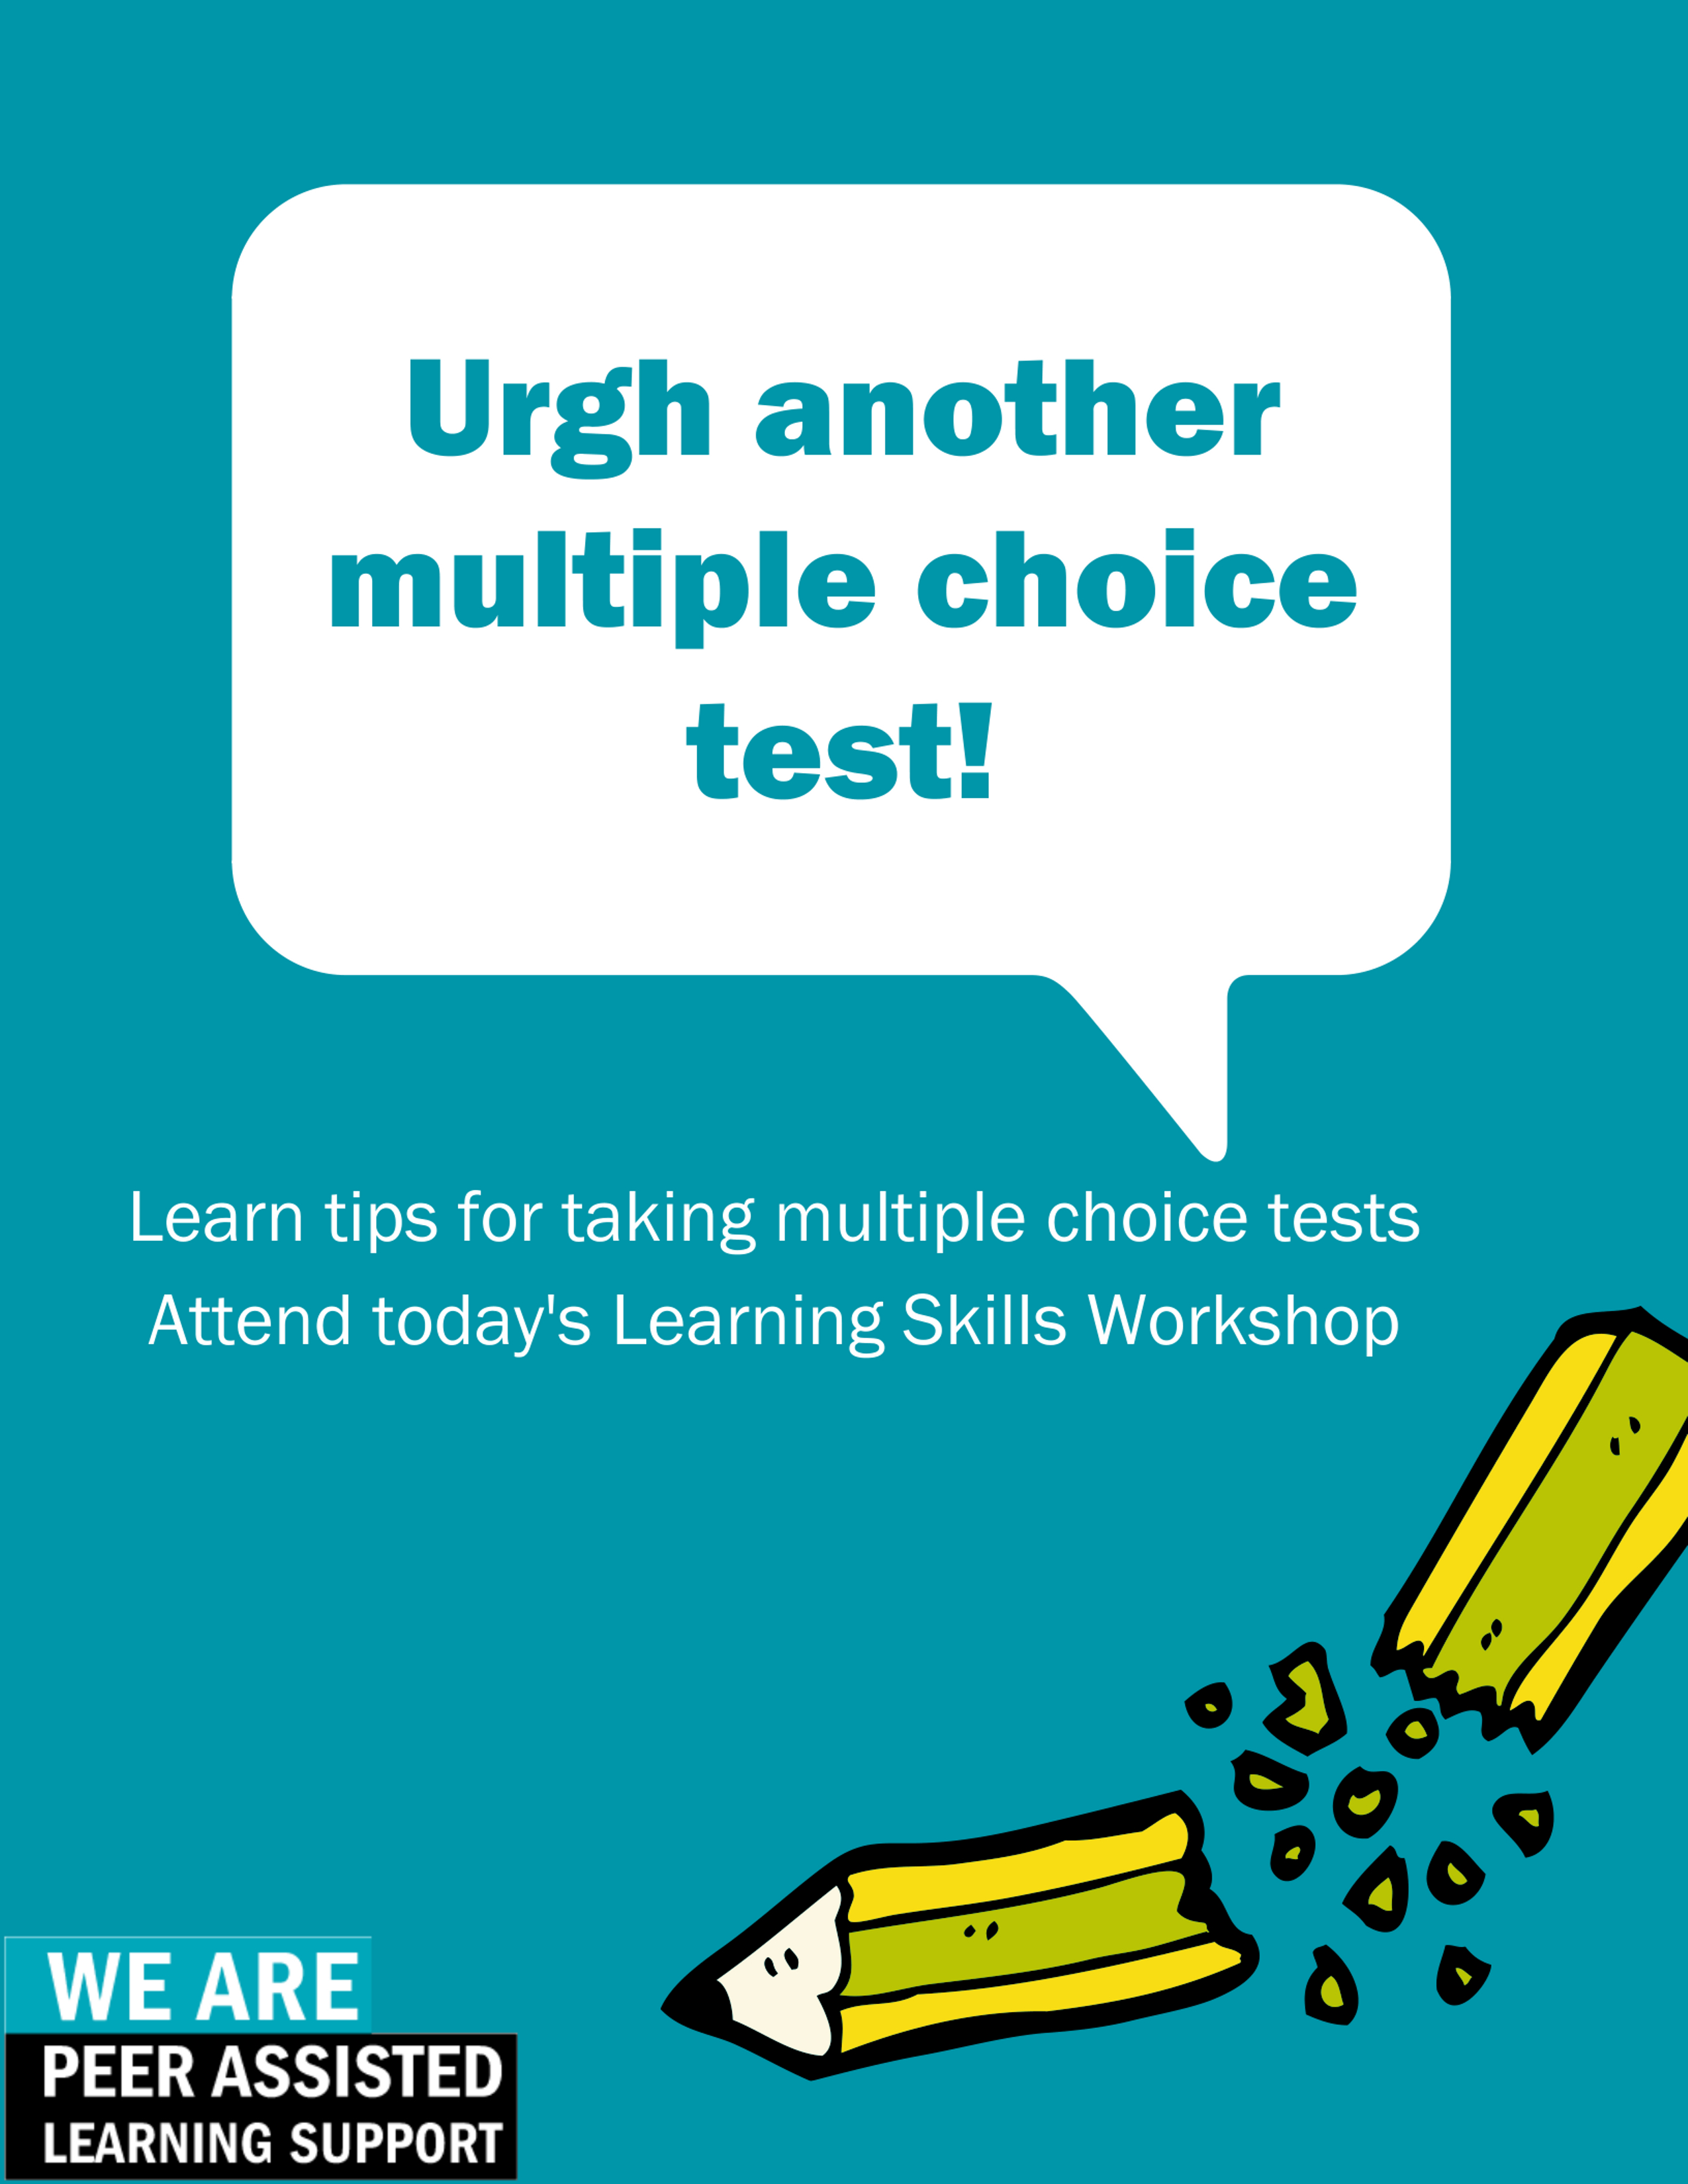 Learn some tips on prepping and taking multiple choice tests and exams.